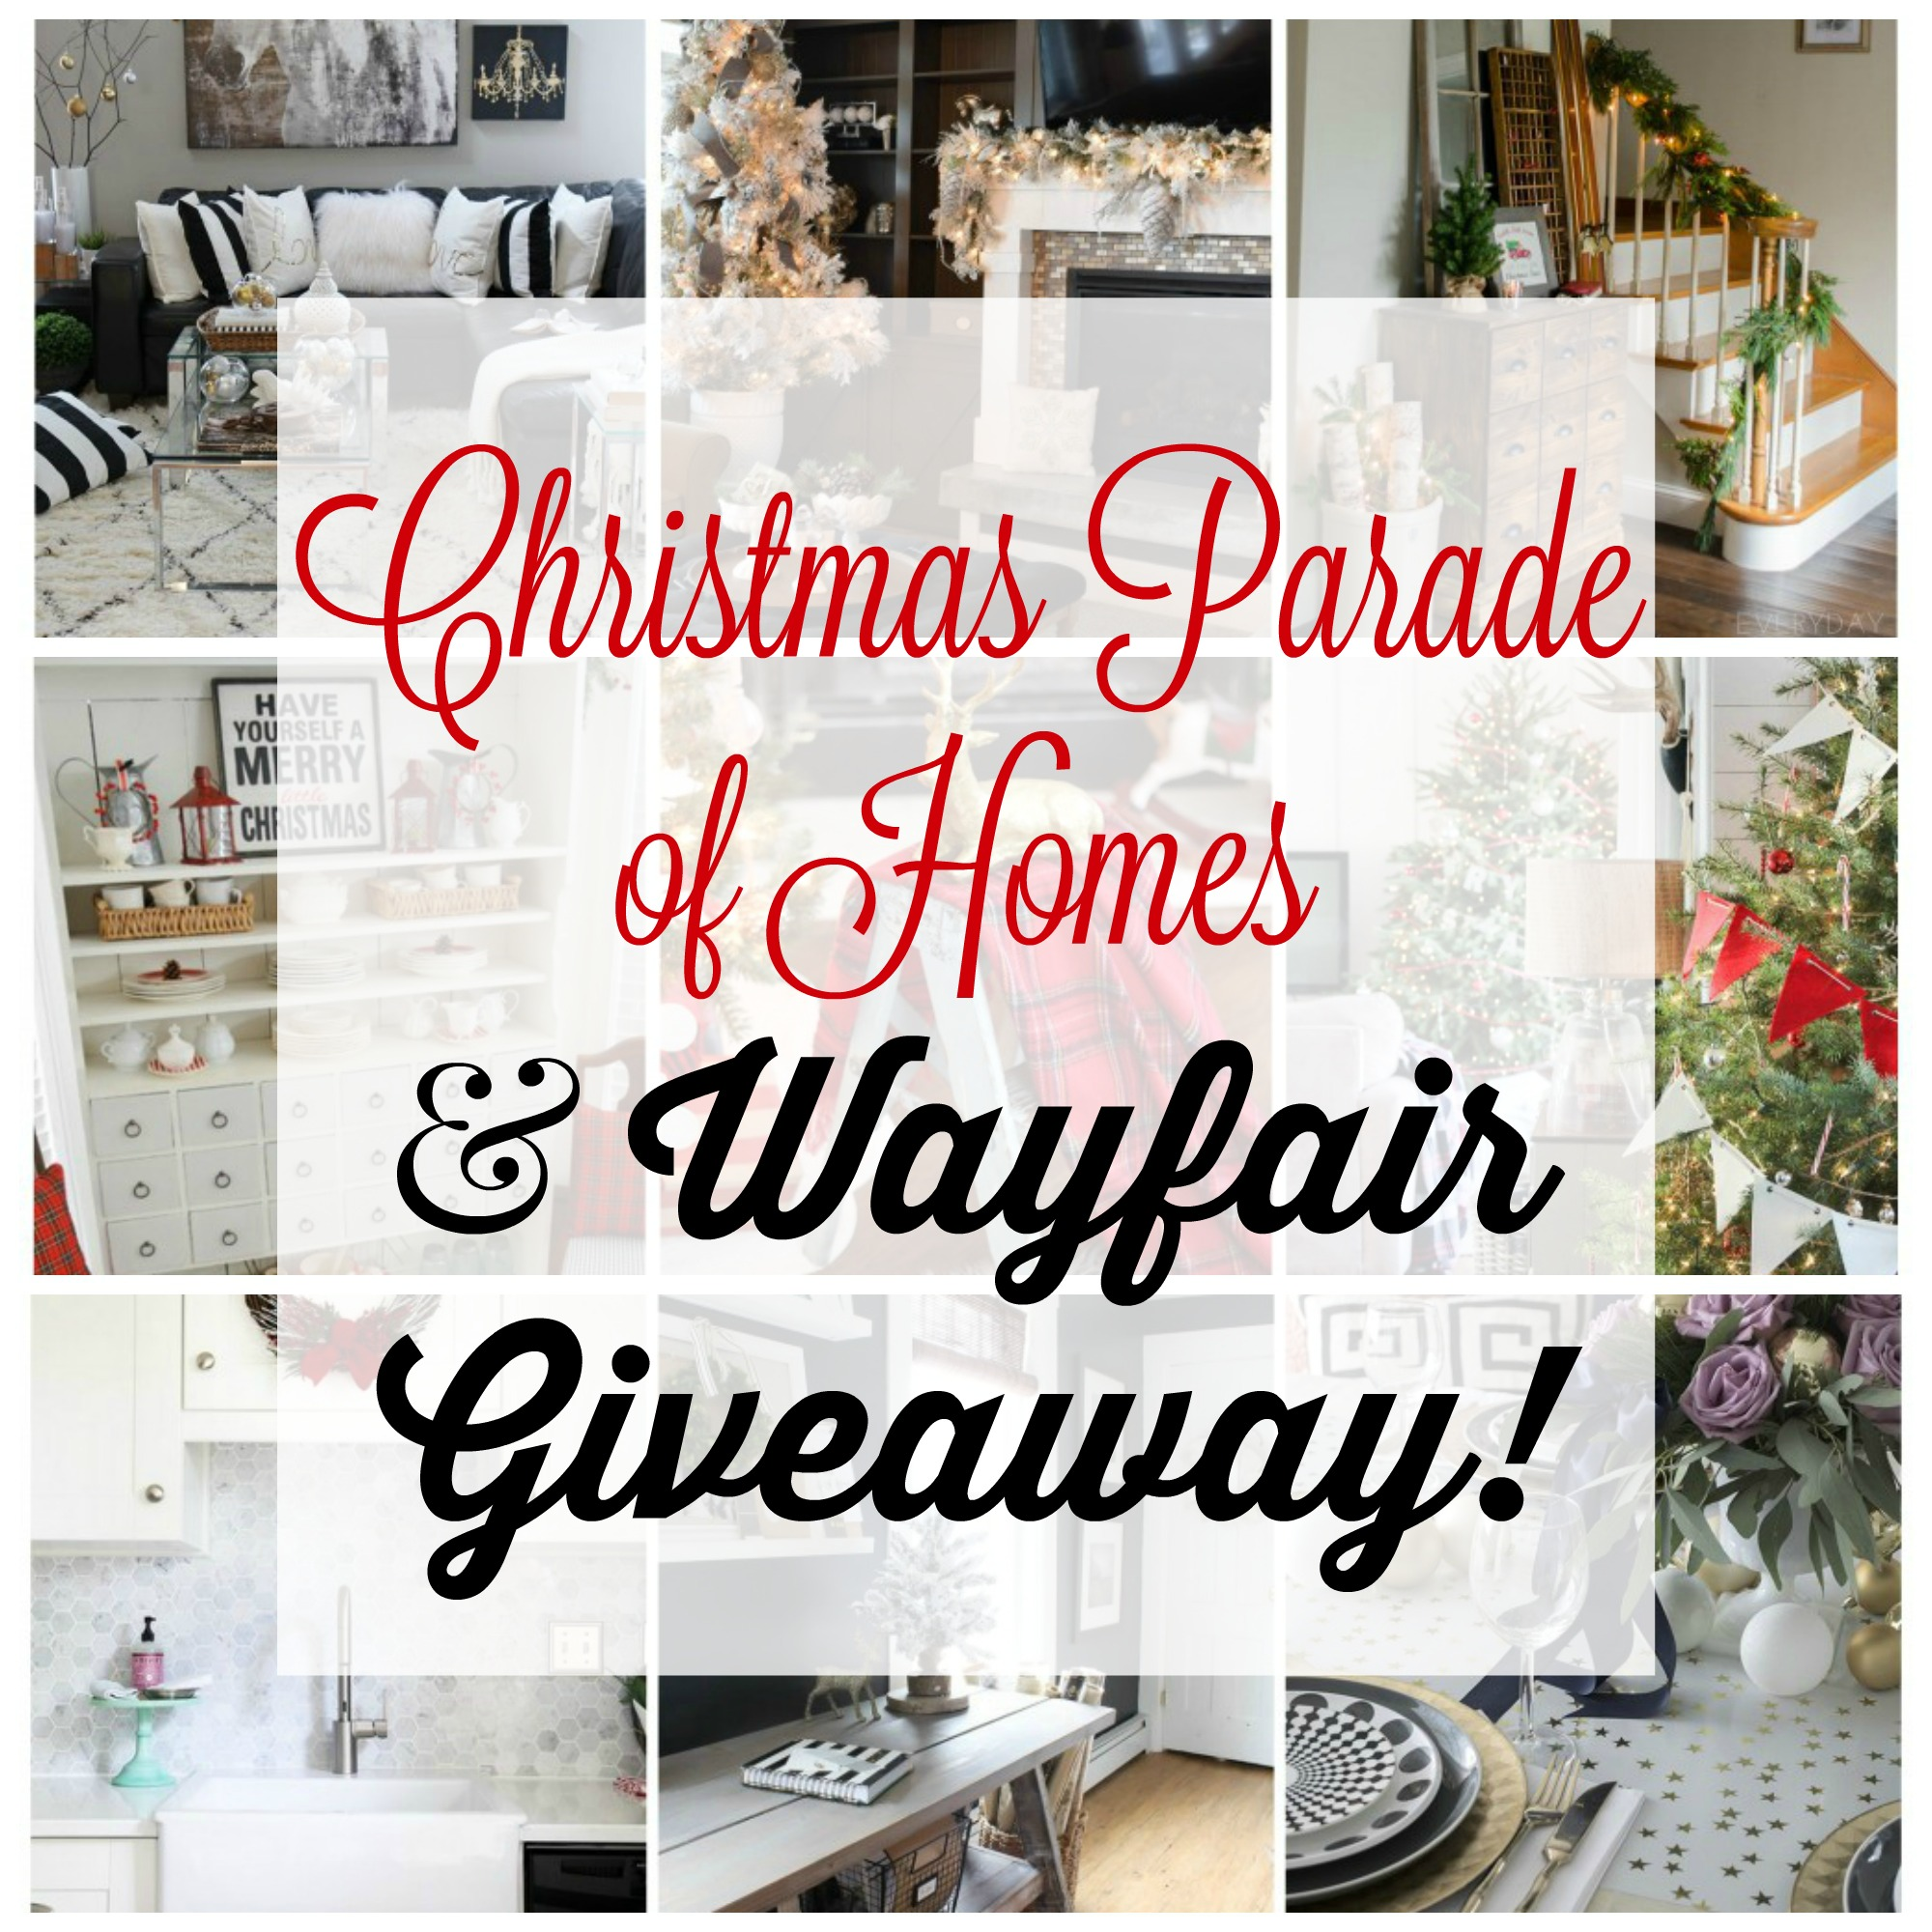 wayfair christmas giveaway at fox hollow cottage blog - Wayfair Christmas